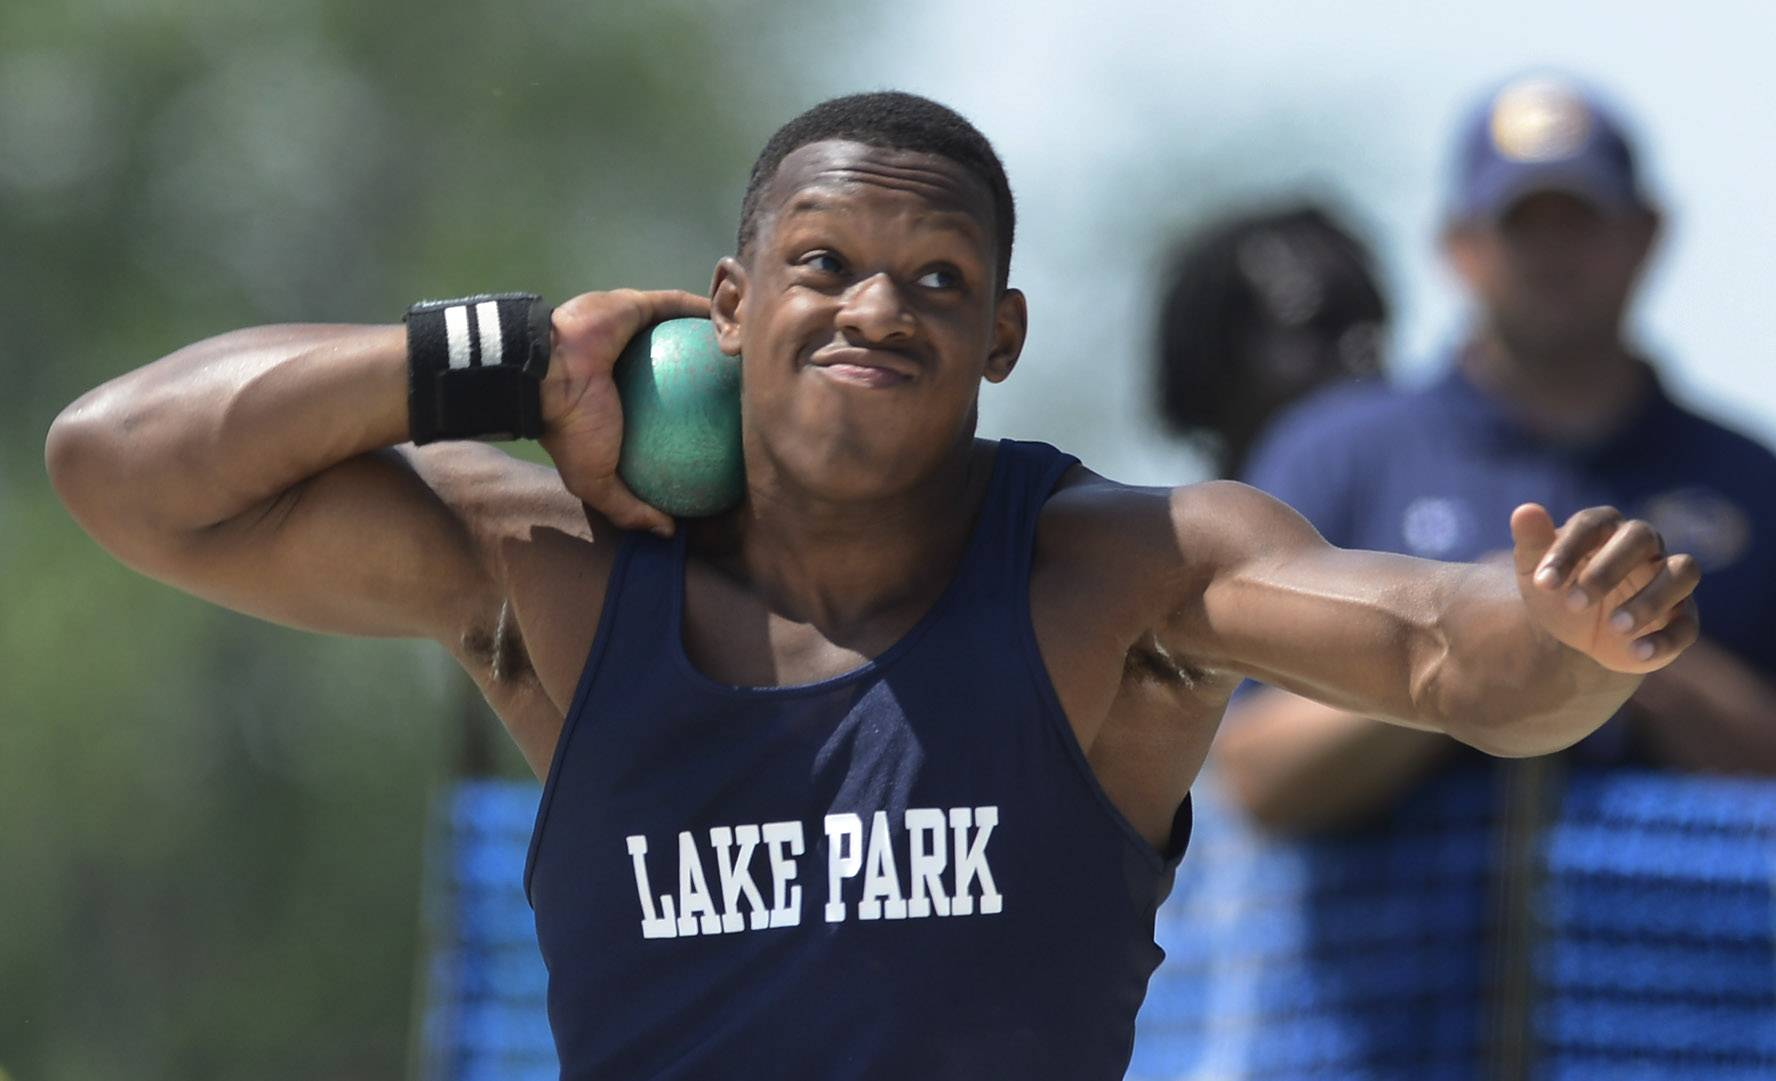 Lake Park's Curtwan Evans makes his throw on the shot put during the boys class 3A state track and field finals in Charleston Saturday